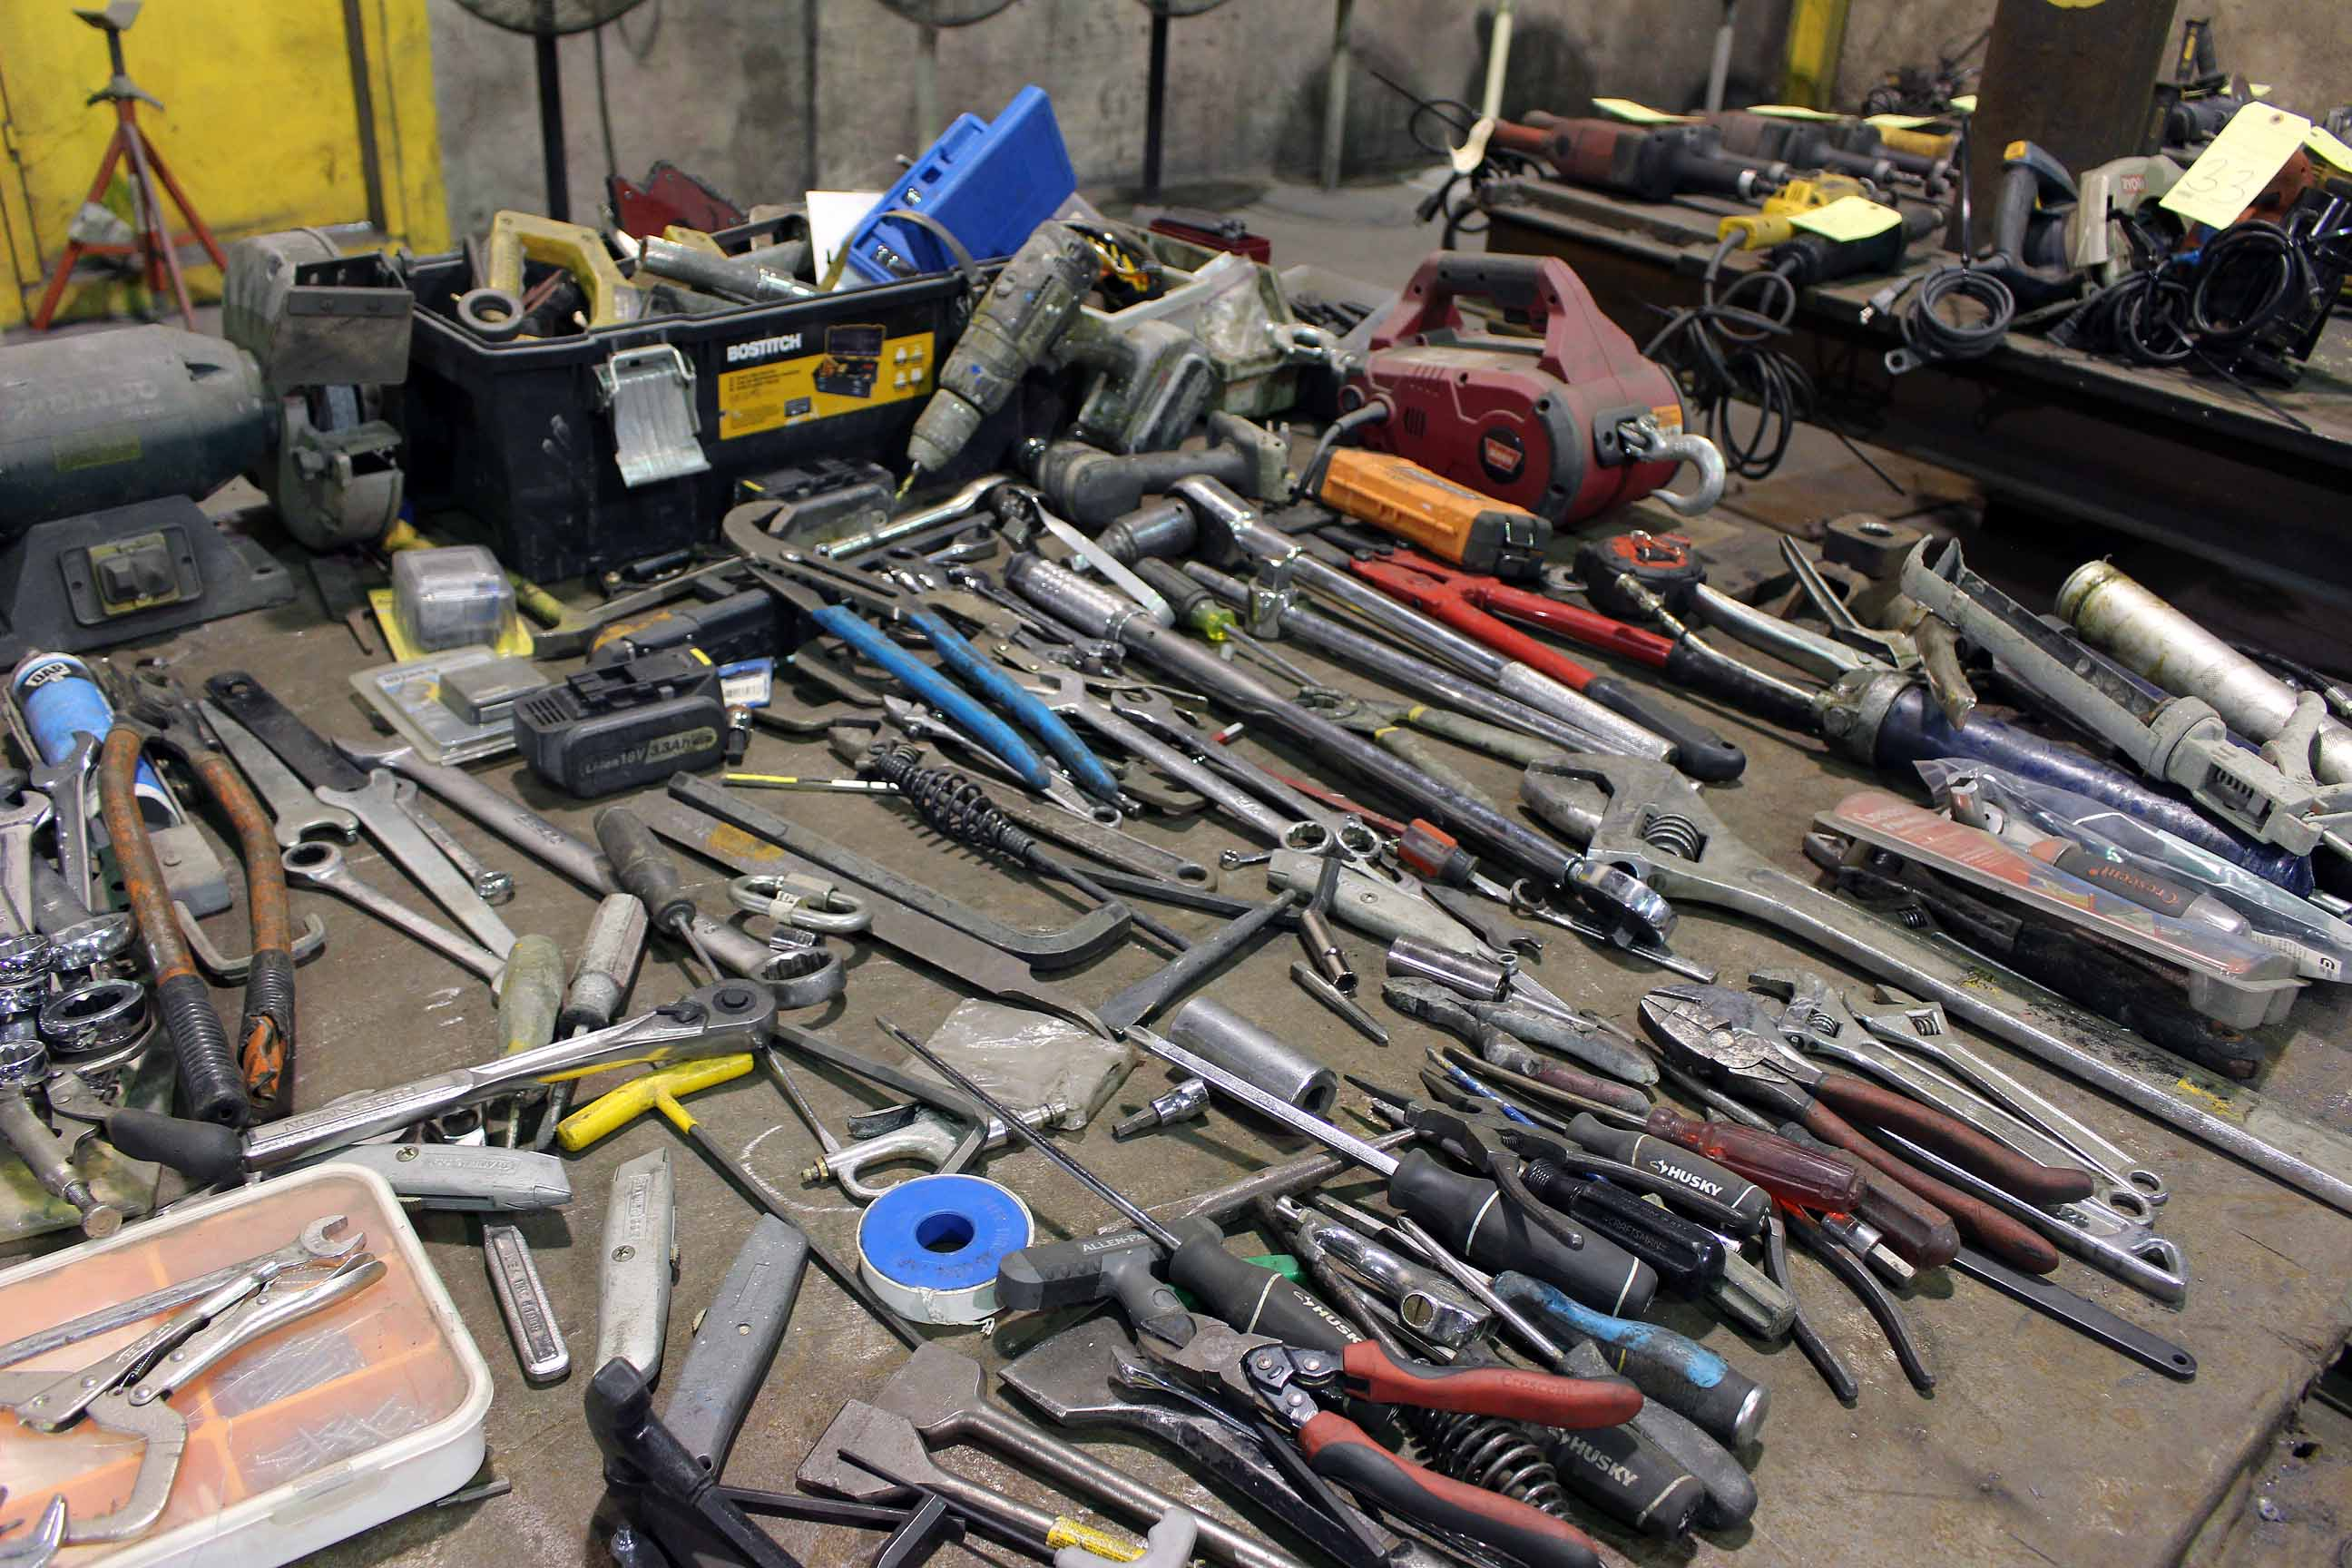 Lot 40 - LOT CONSISTING OF: misc. hand tools, wrenches, pliers, sockets, electric drills, etc.